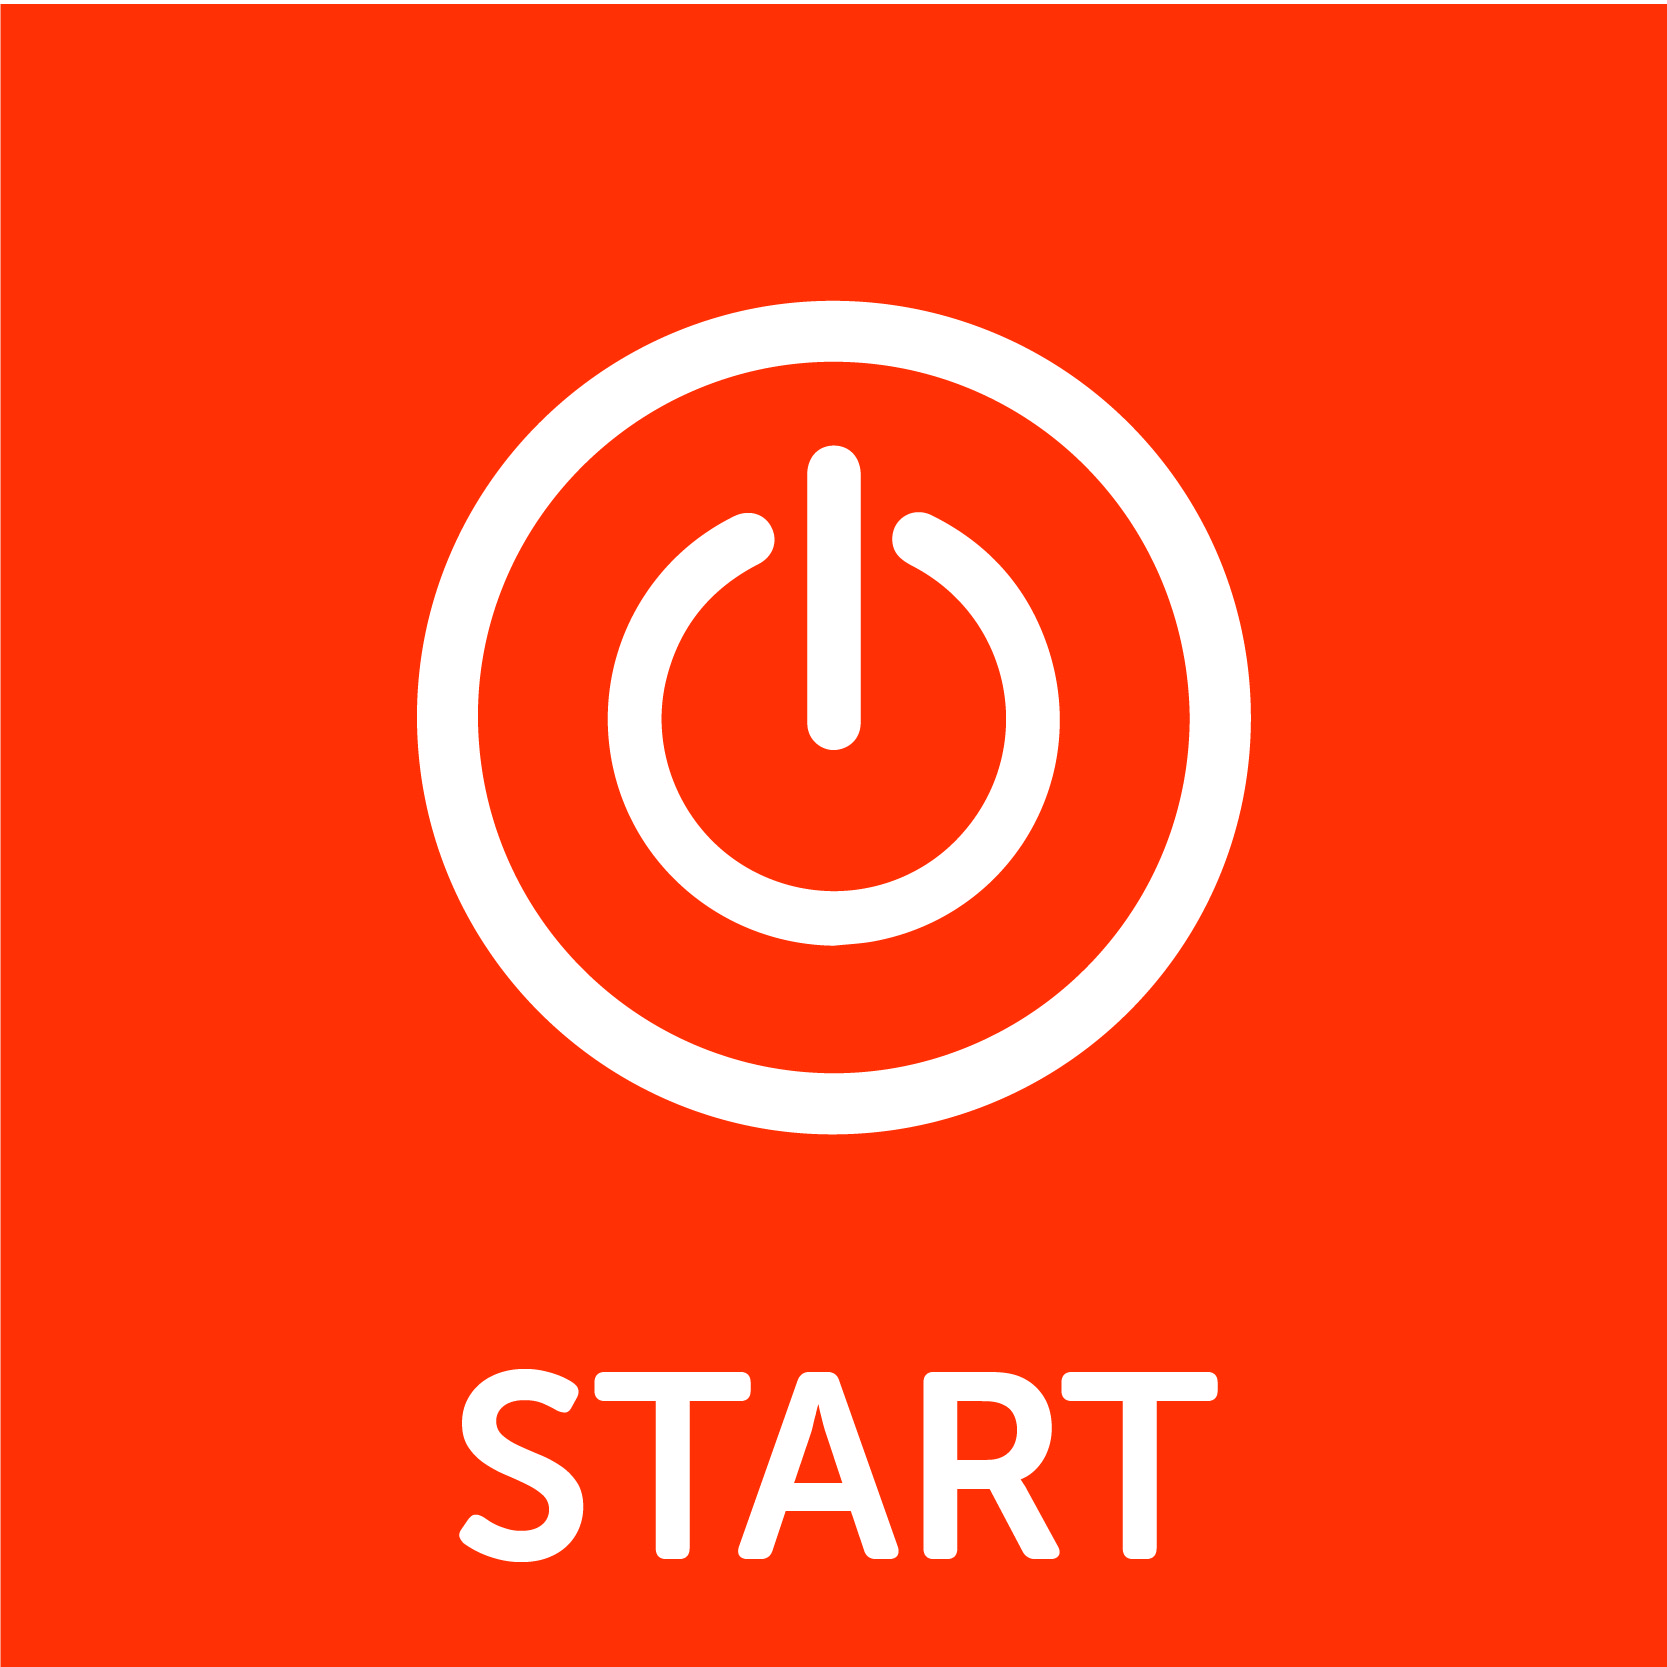 how do you want to start? -